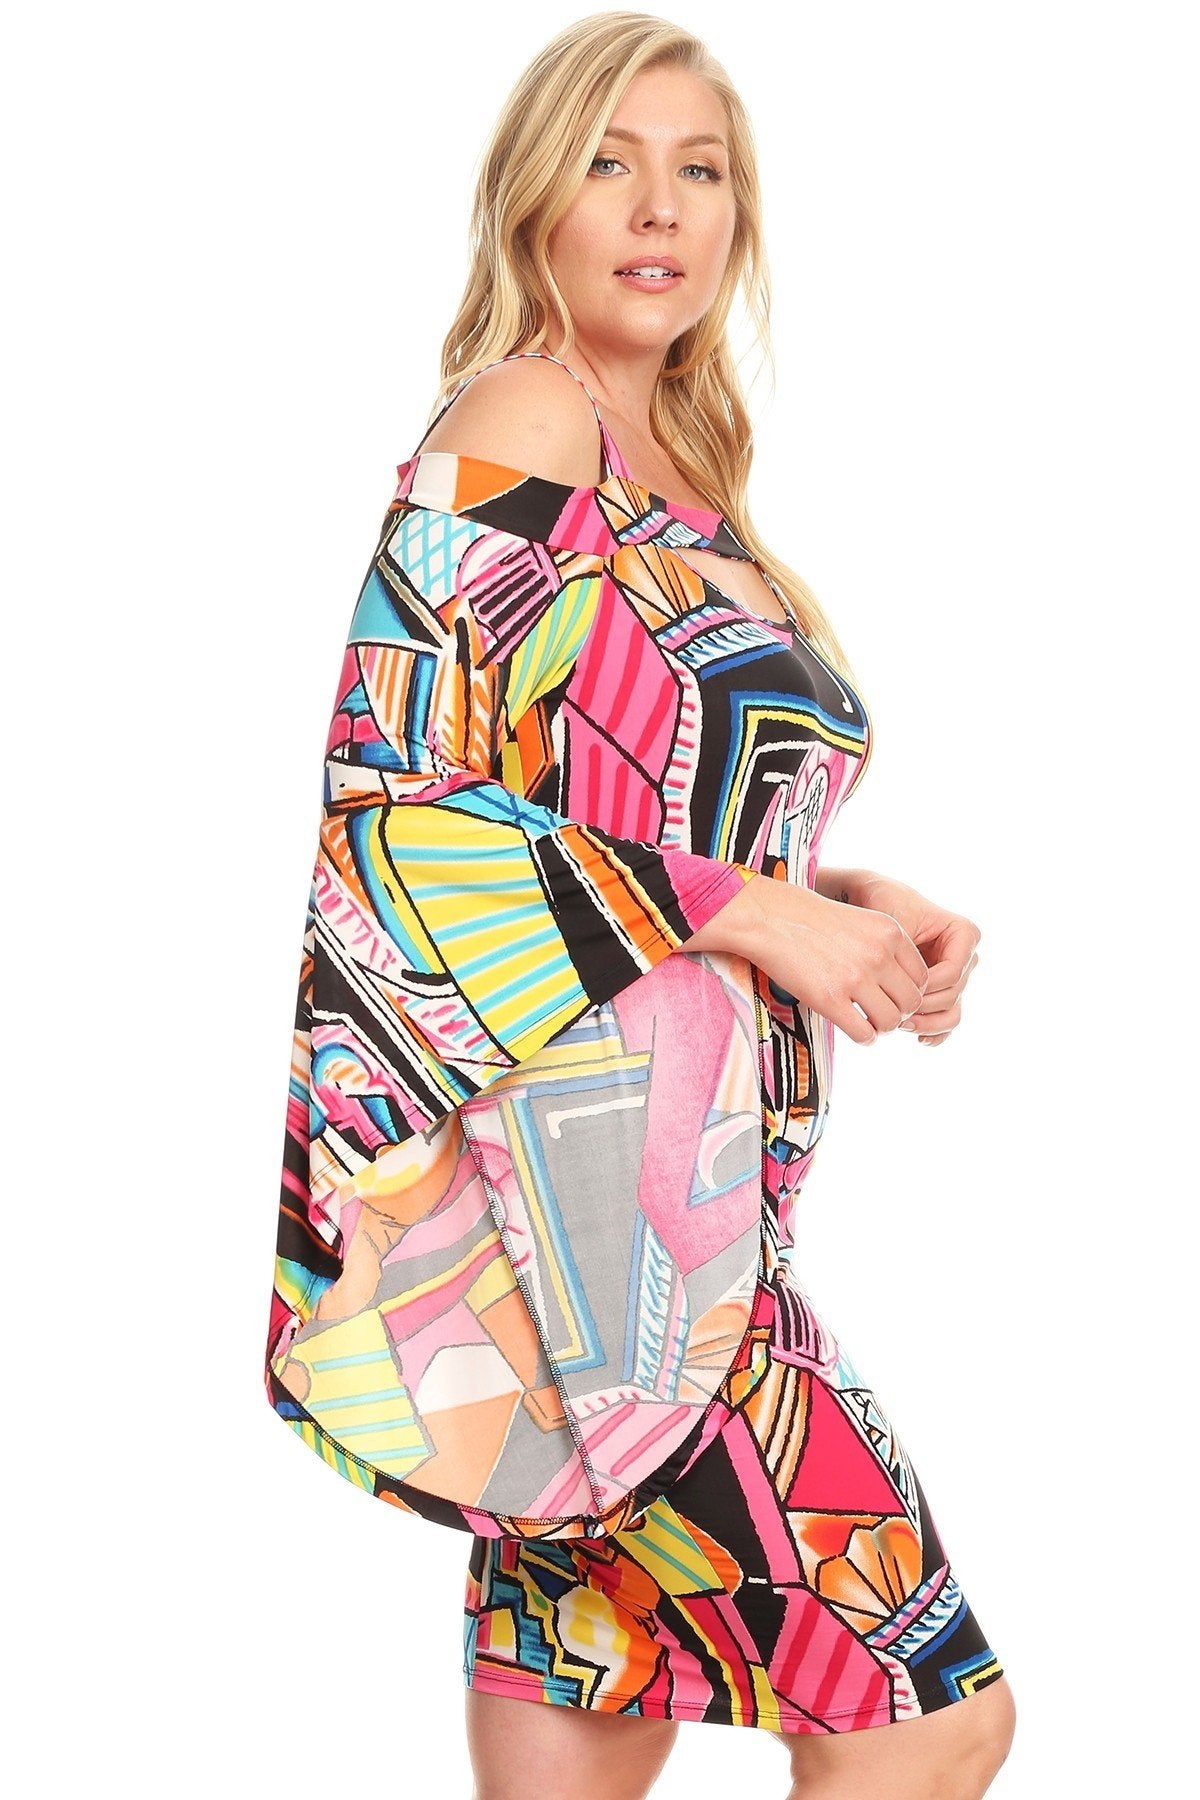 4310a9596df35 Plus Size Multi-Colored Mixed Print Short Cold Shoulder Dress – slayboo